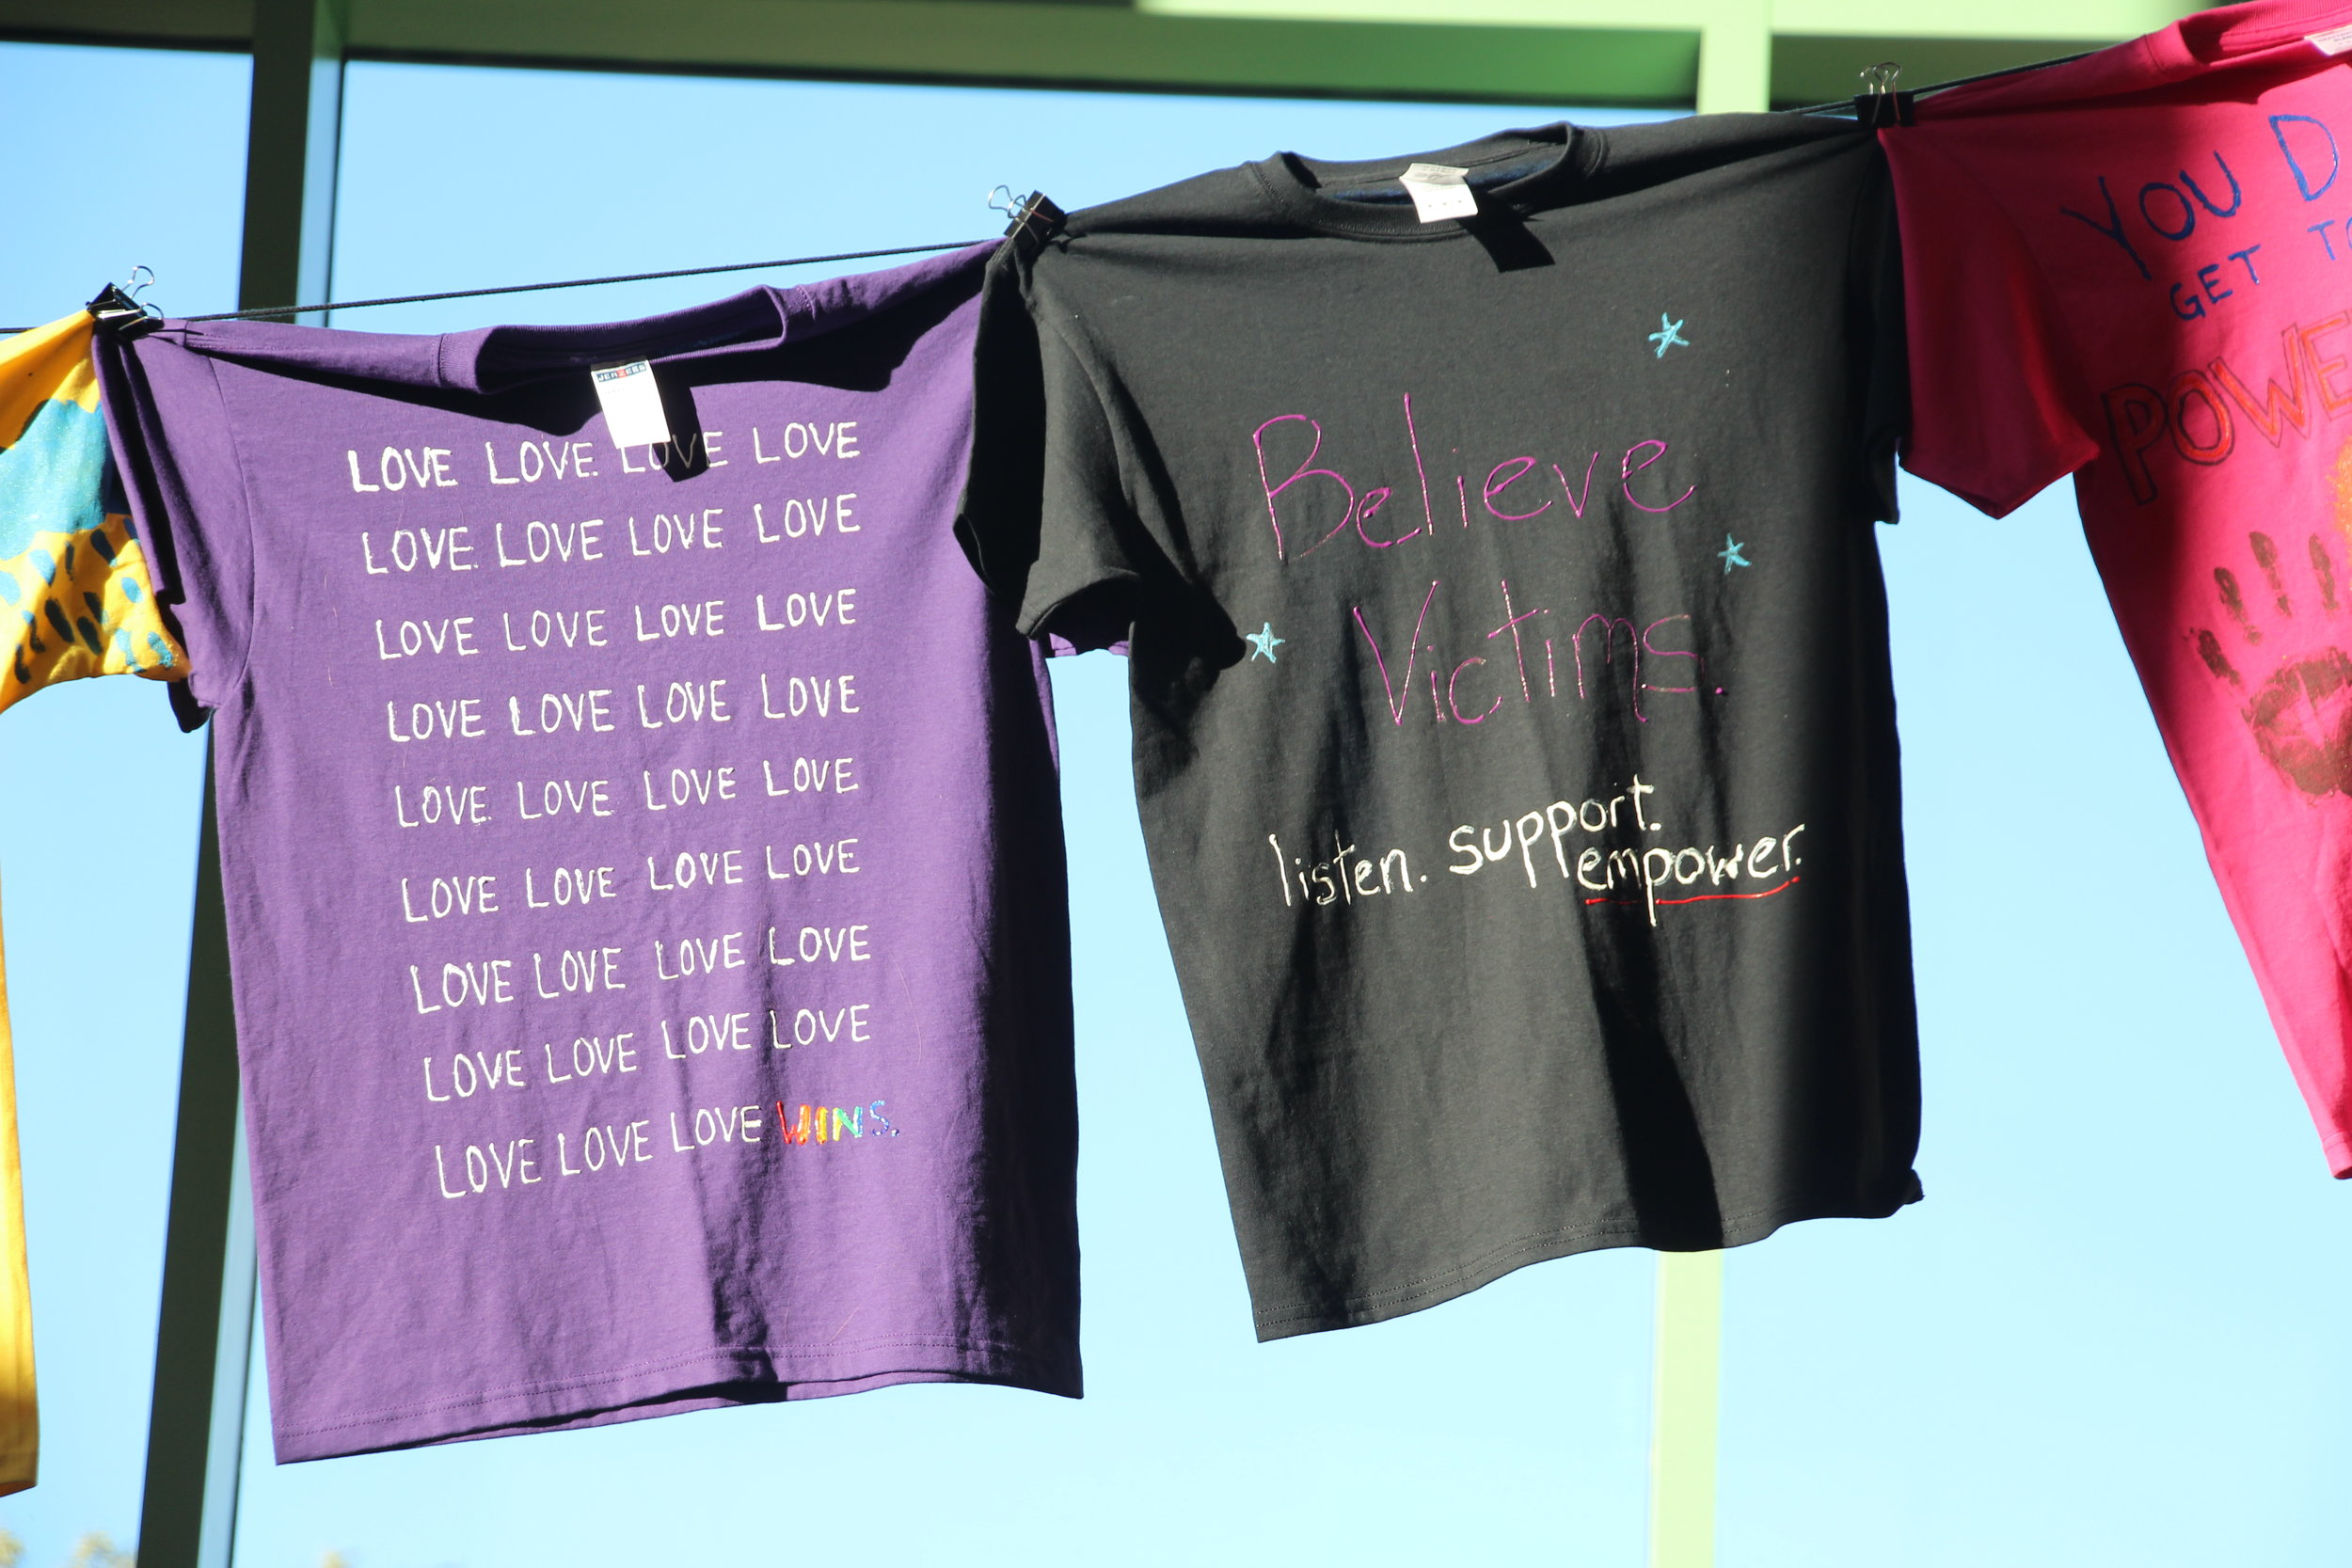 The T-shirts have messages of love and support for victims and survivors. Photo by Ren Friemann